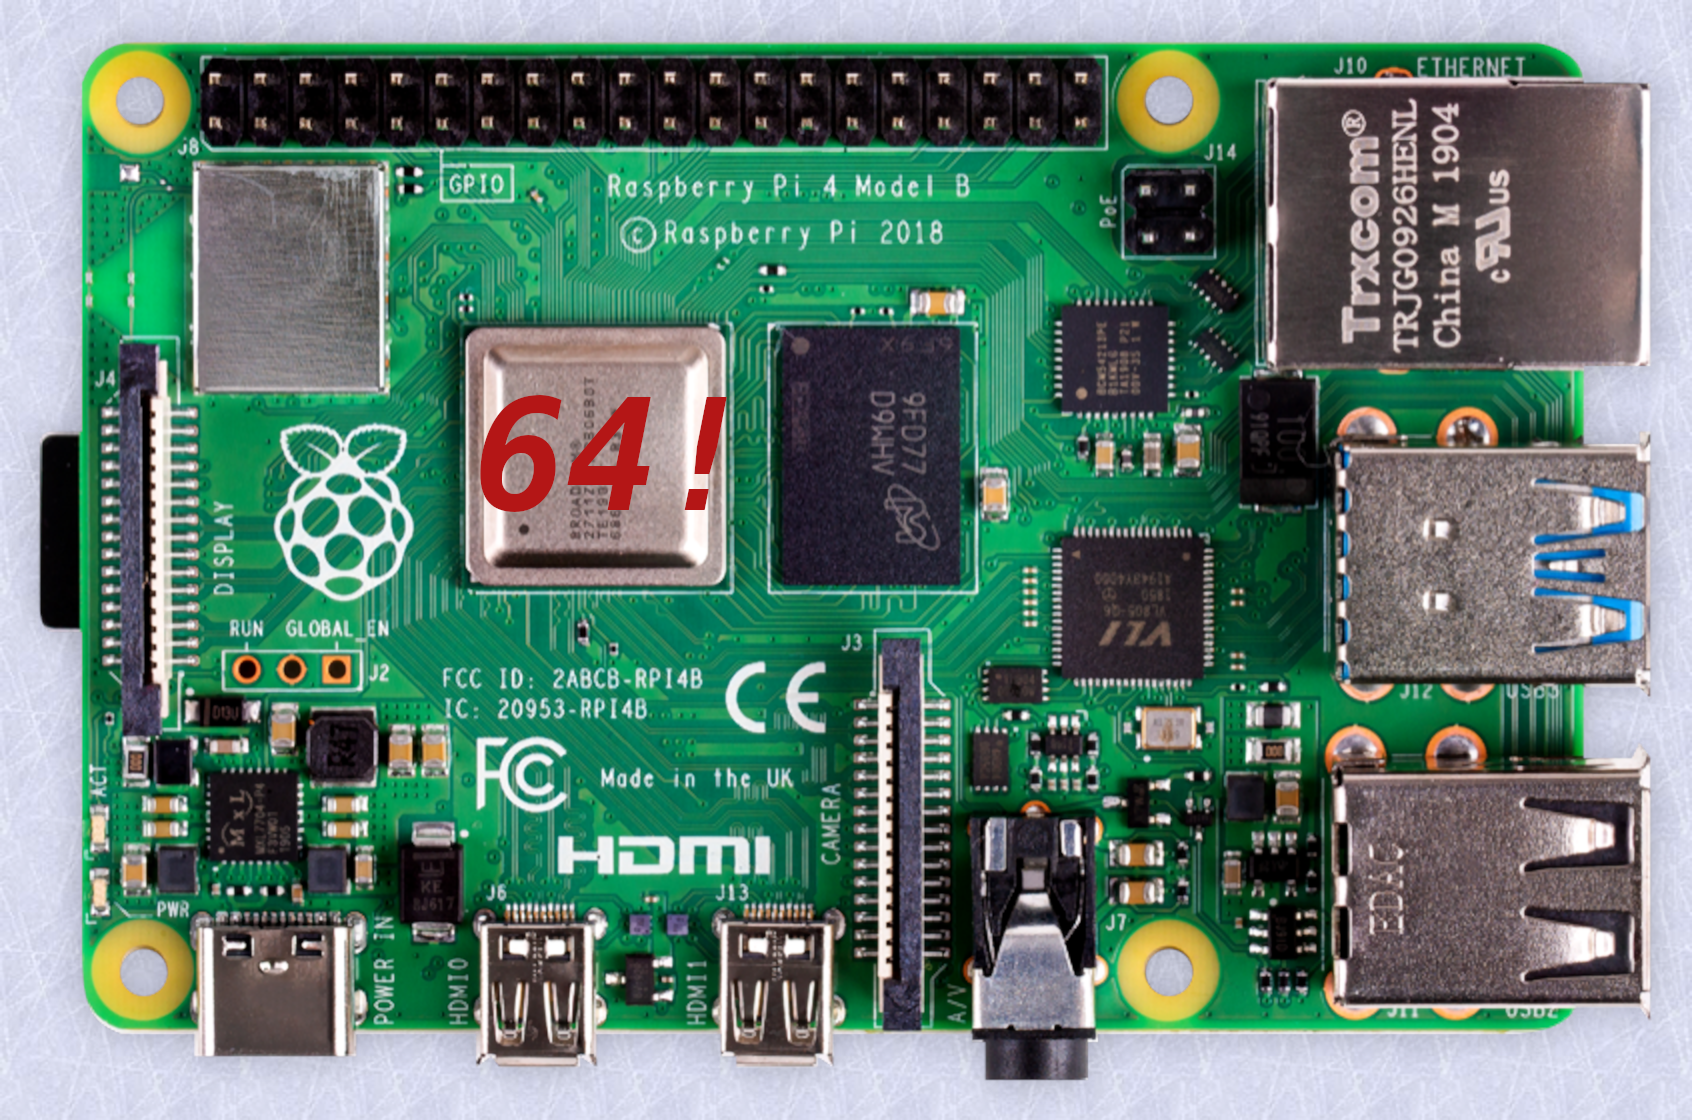 How To Make Your Raspberry Pi 4 Faster With A 64 Bit Kernel By Al Williams For Linux Users Medium